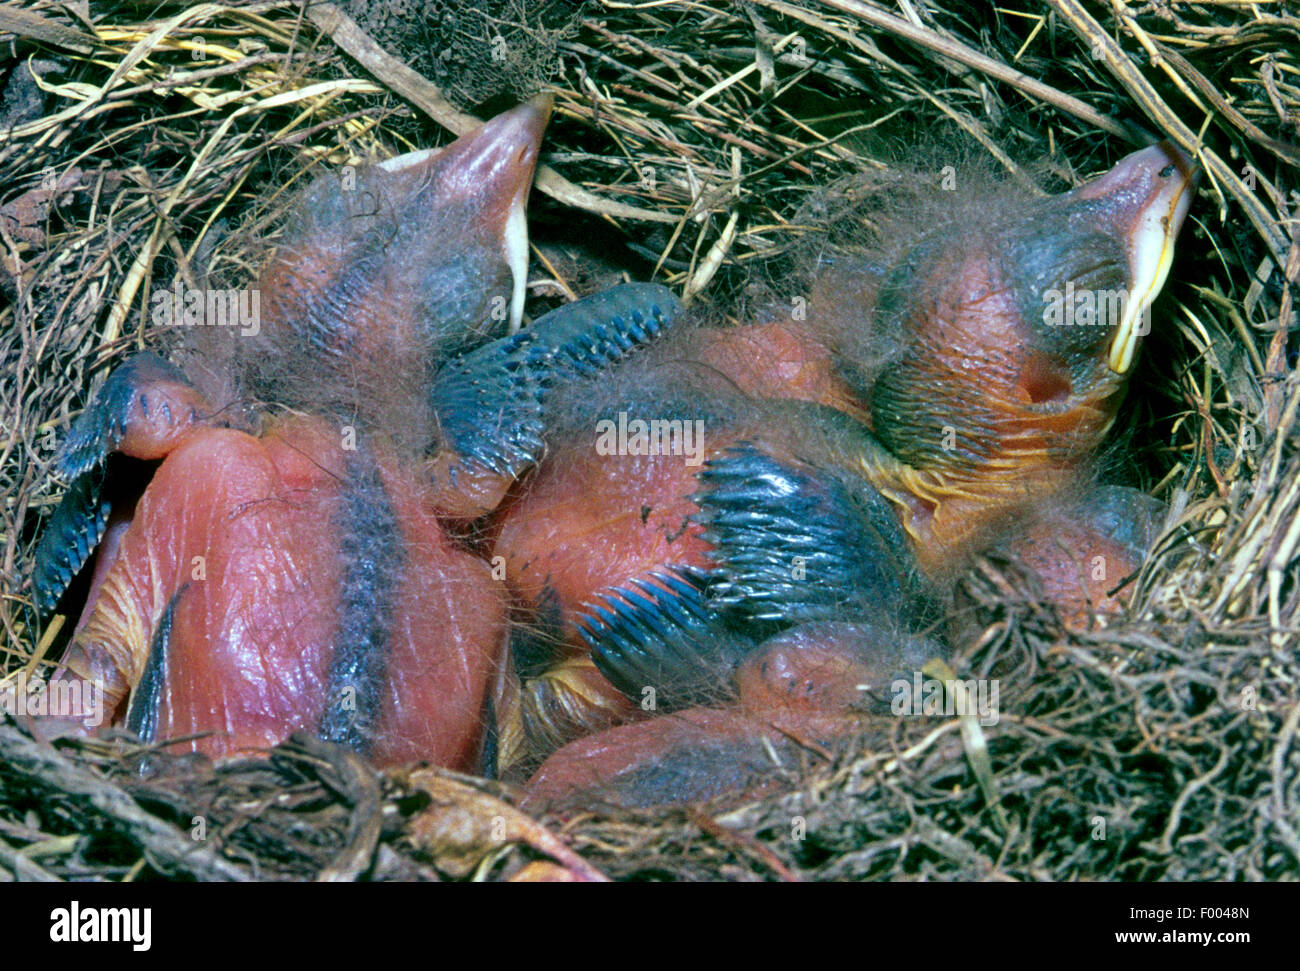 blackbird (Turdus merula), blackbird squabs in the nest, Germany - Stock Image